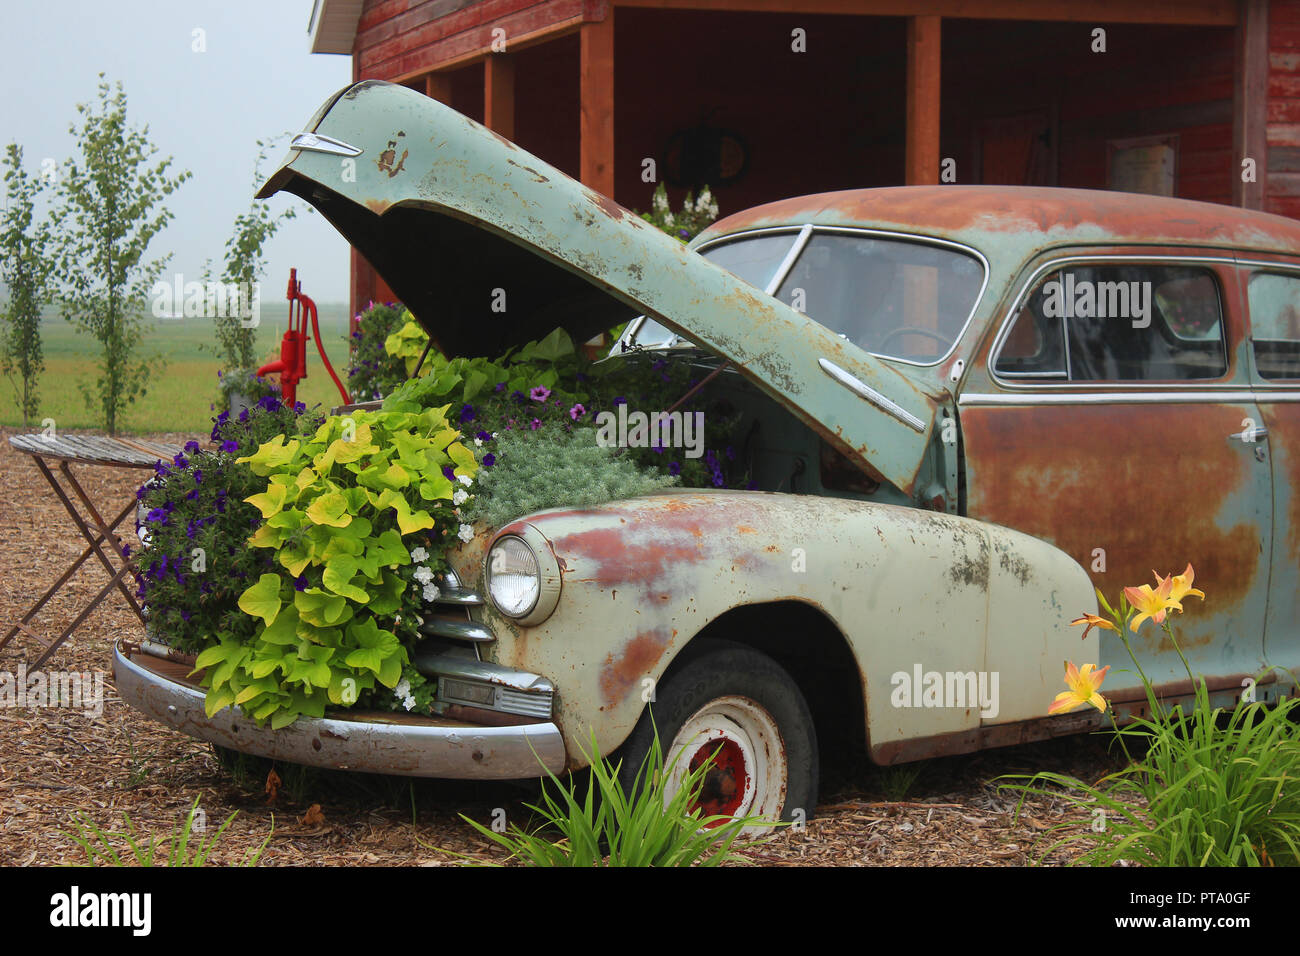 A creative planter in a vintage automobile - Stock Image